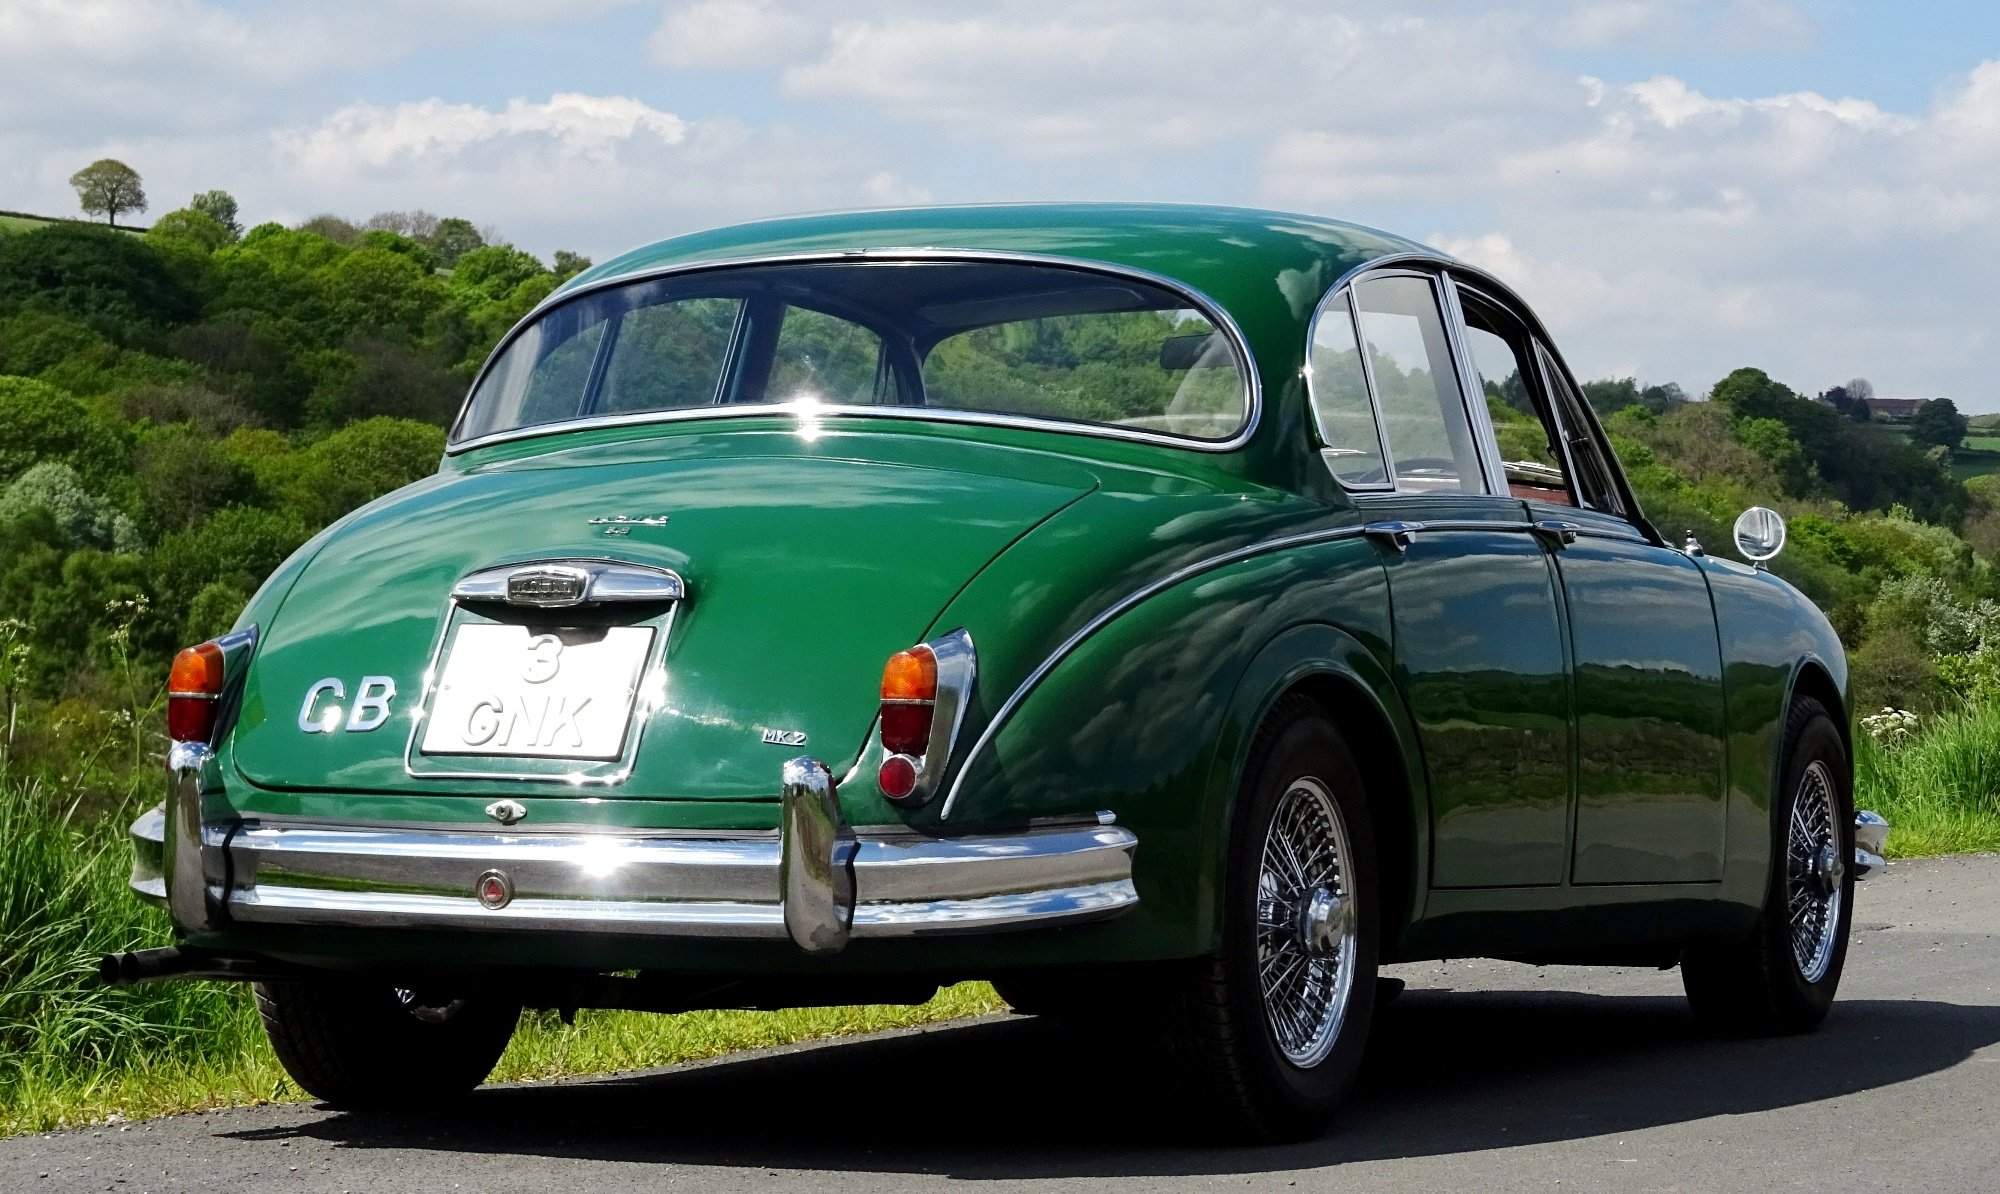 1961 STUNNING JAGUAR MK2 3.8 BRITISH CLASSIC CAR For Sale (picture 3 of 6)